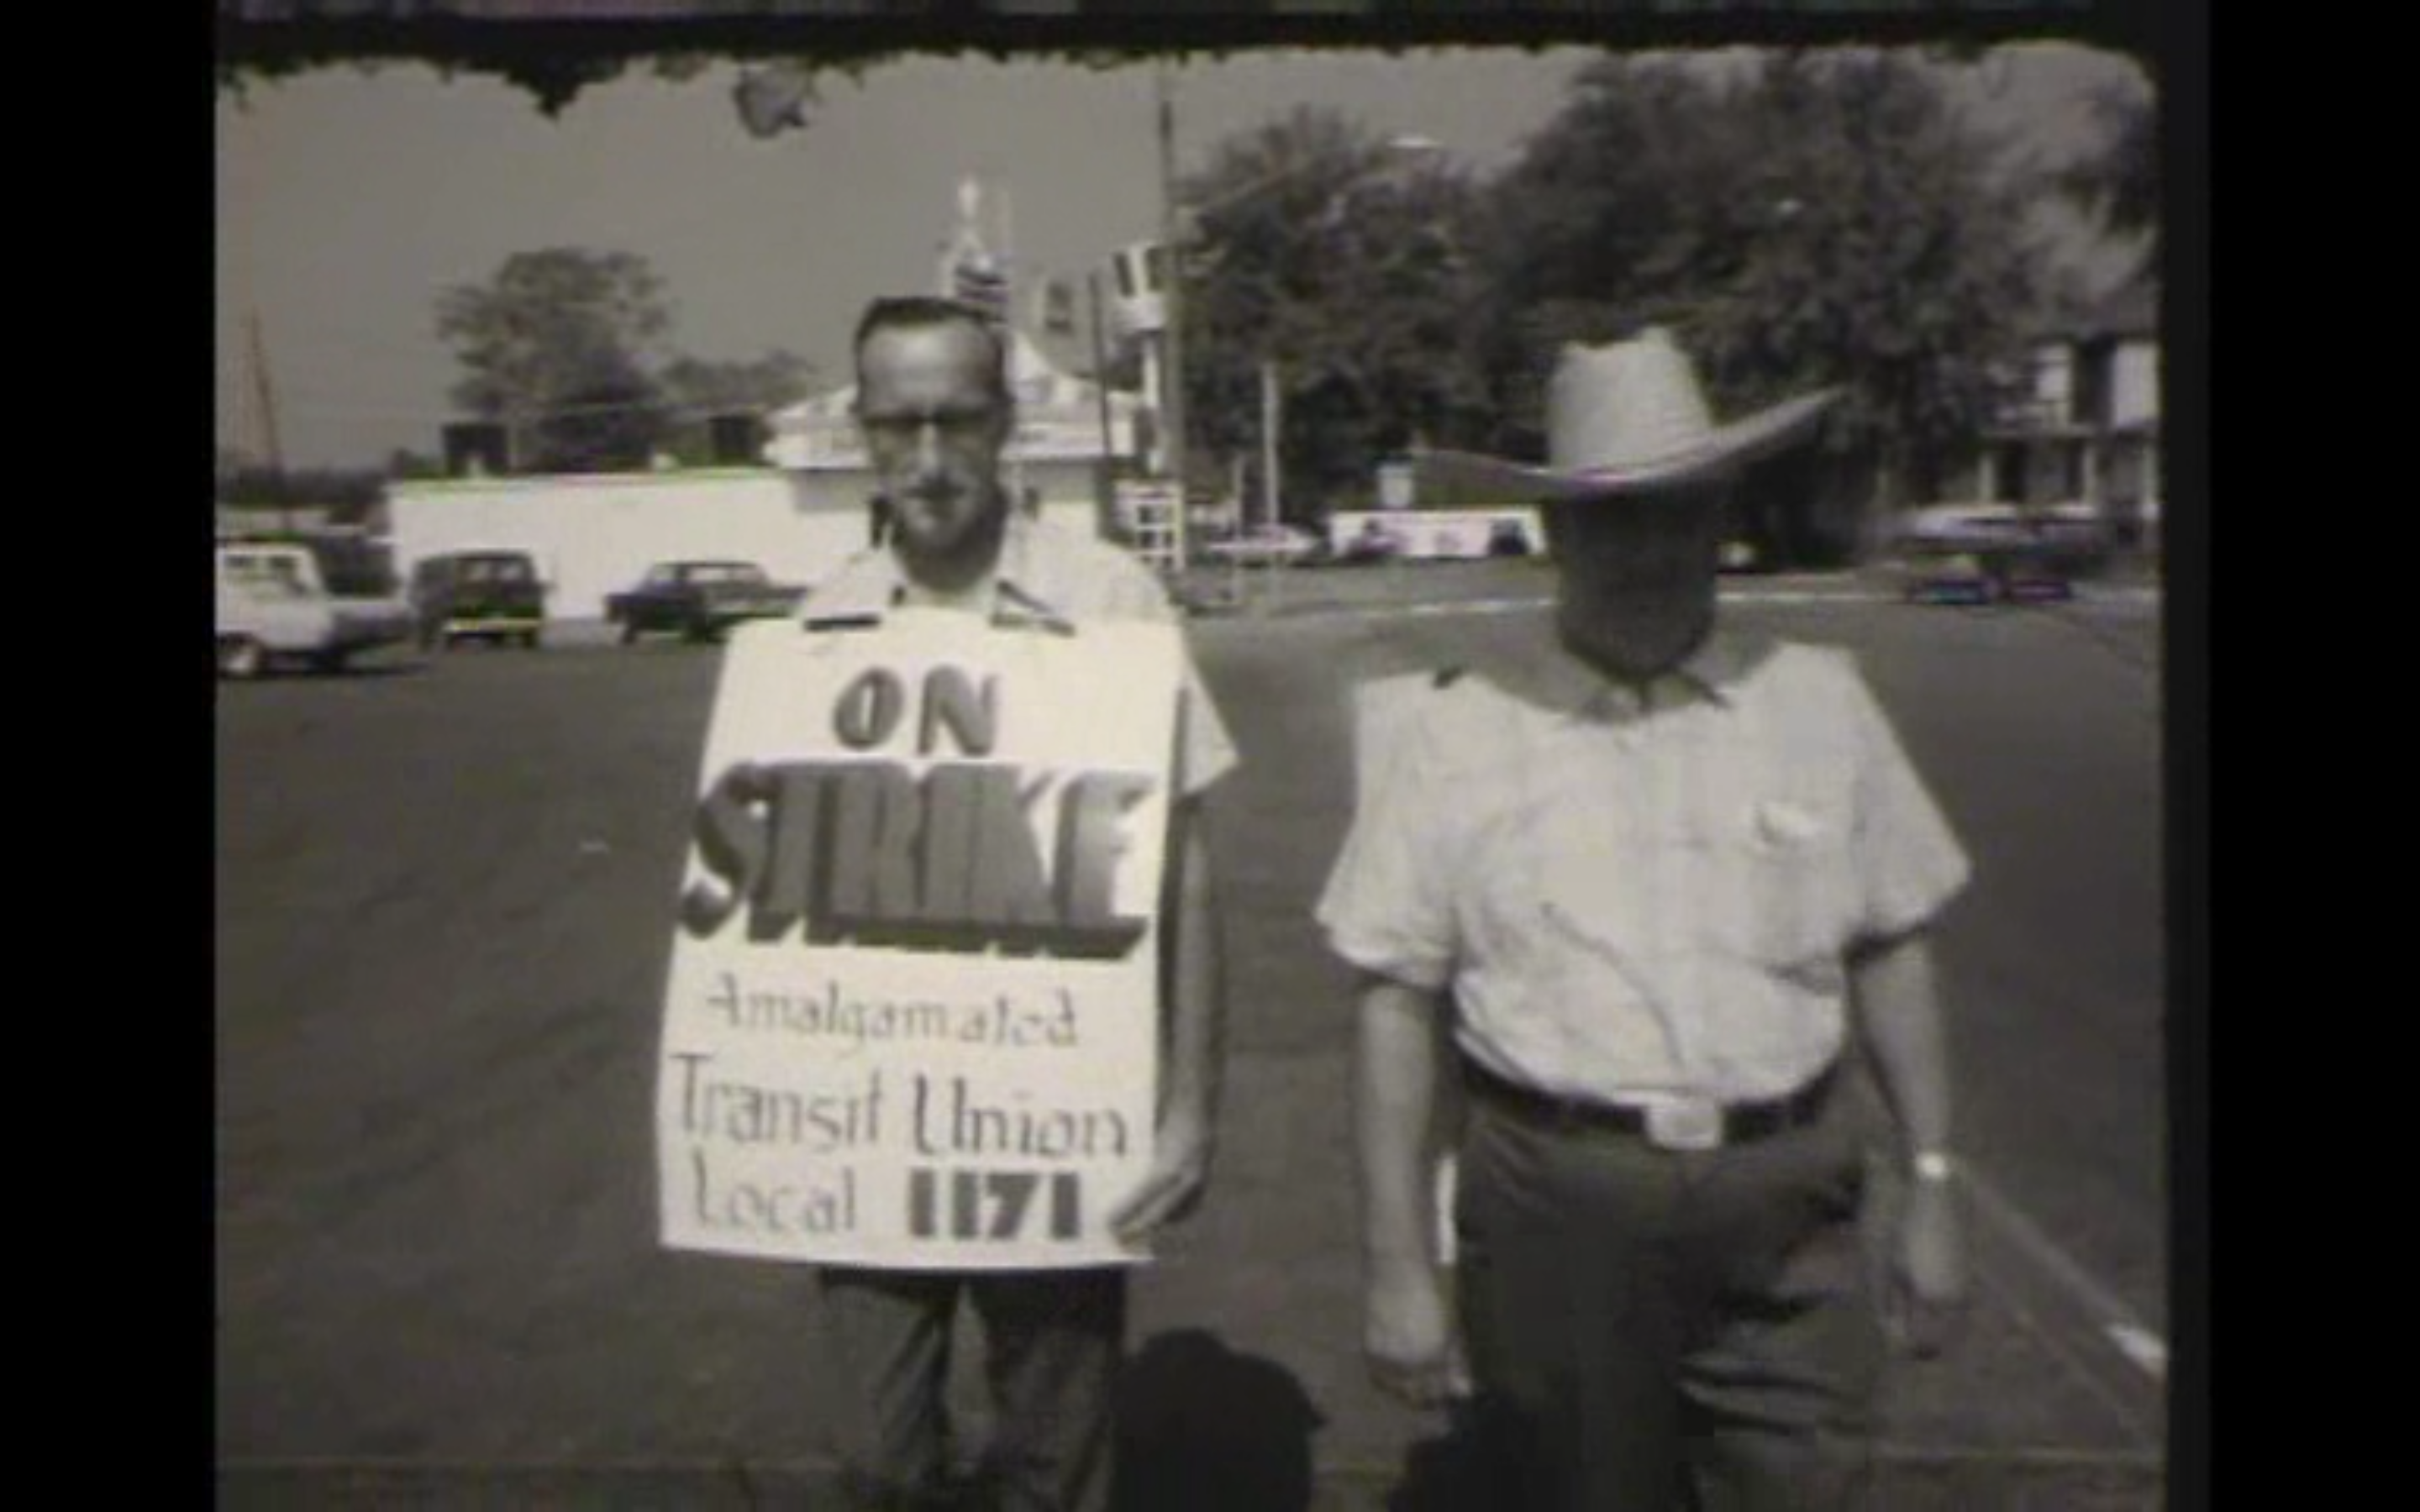 "Two employees walking outside of the Ohio Valley Bus Company's bus barn, during the 1971 strike. Employee on left is wearing a sign that reads, ""ON STRIKE Amalgamated Transit Union Local 1171"""